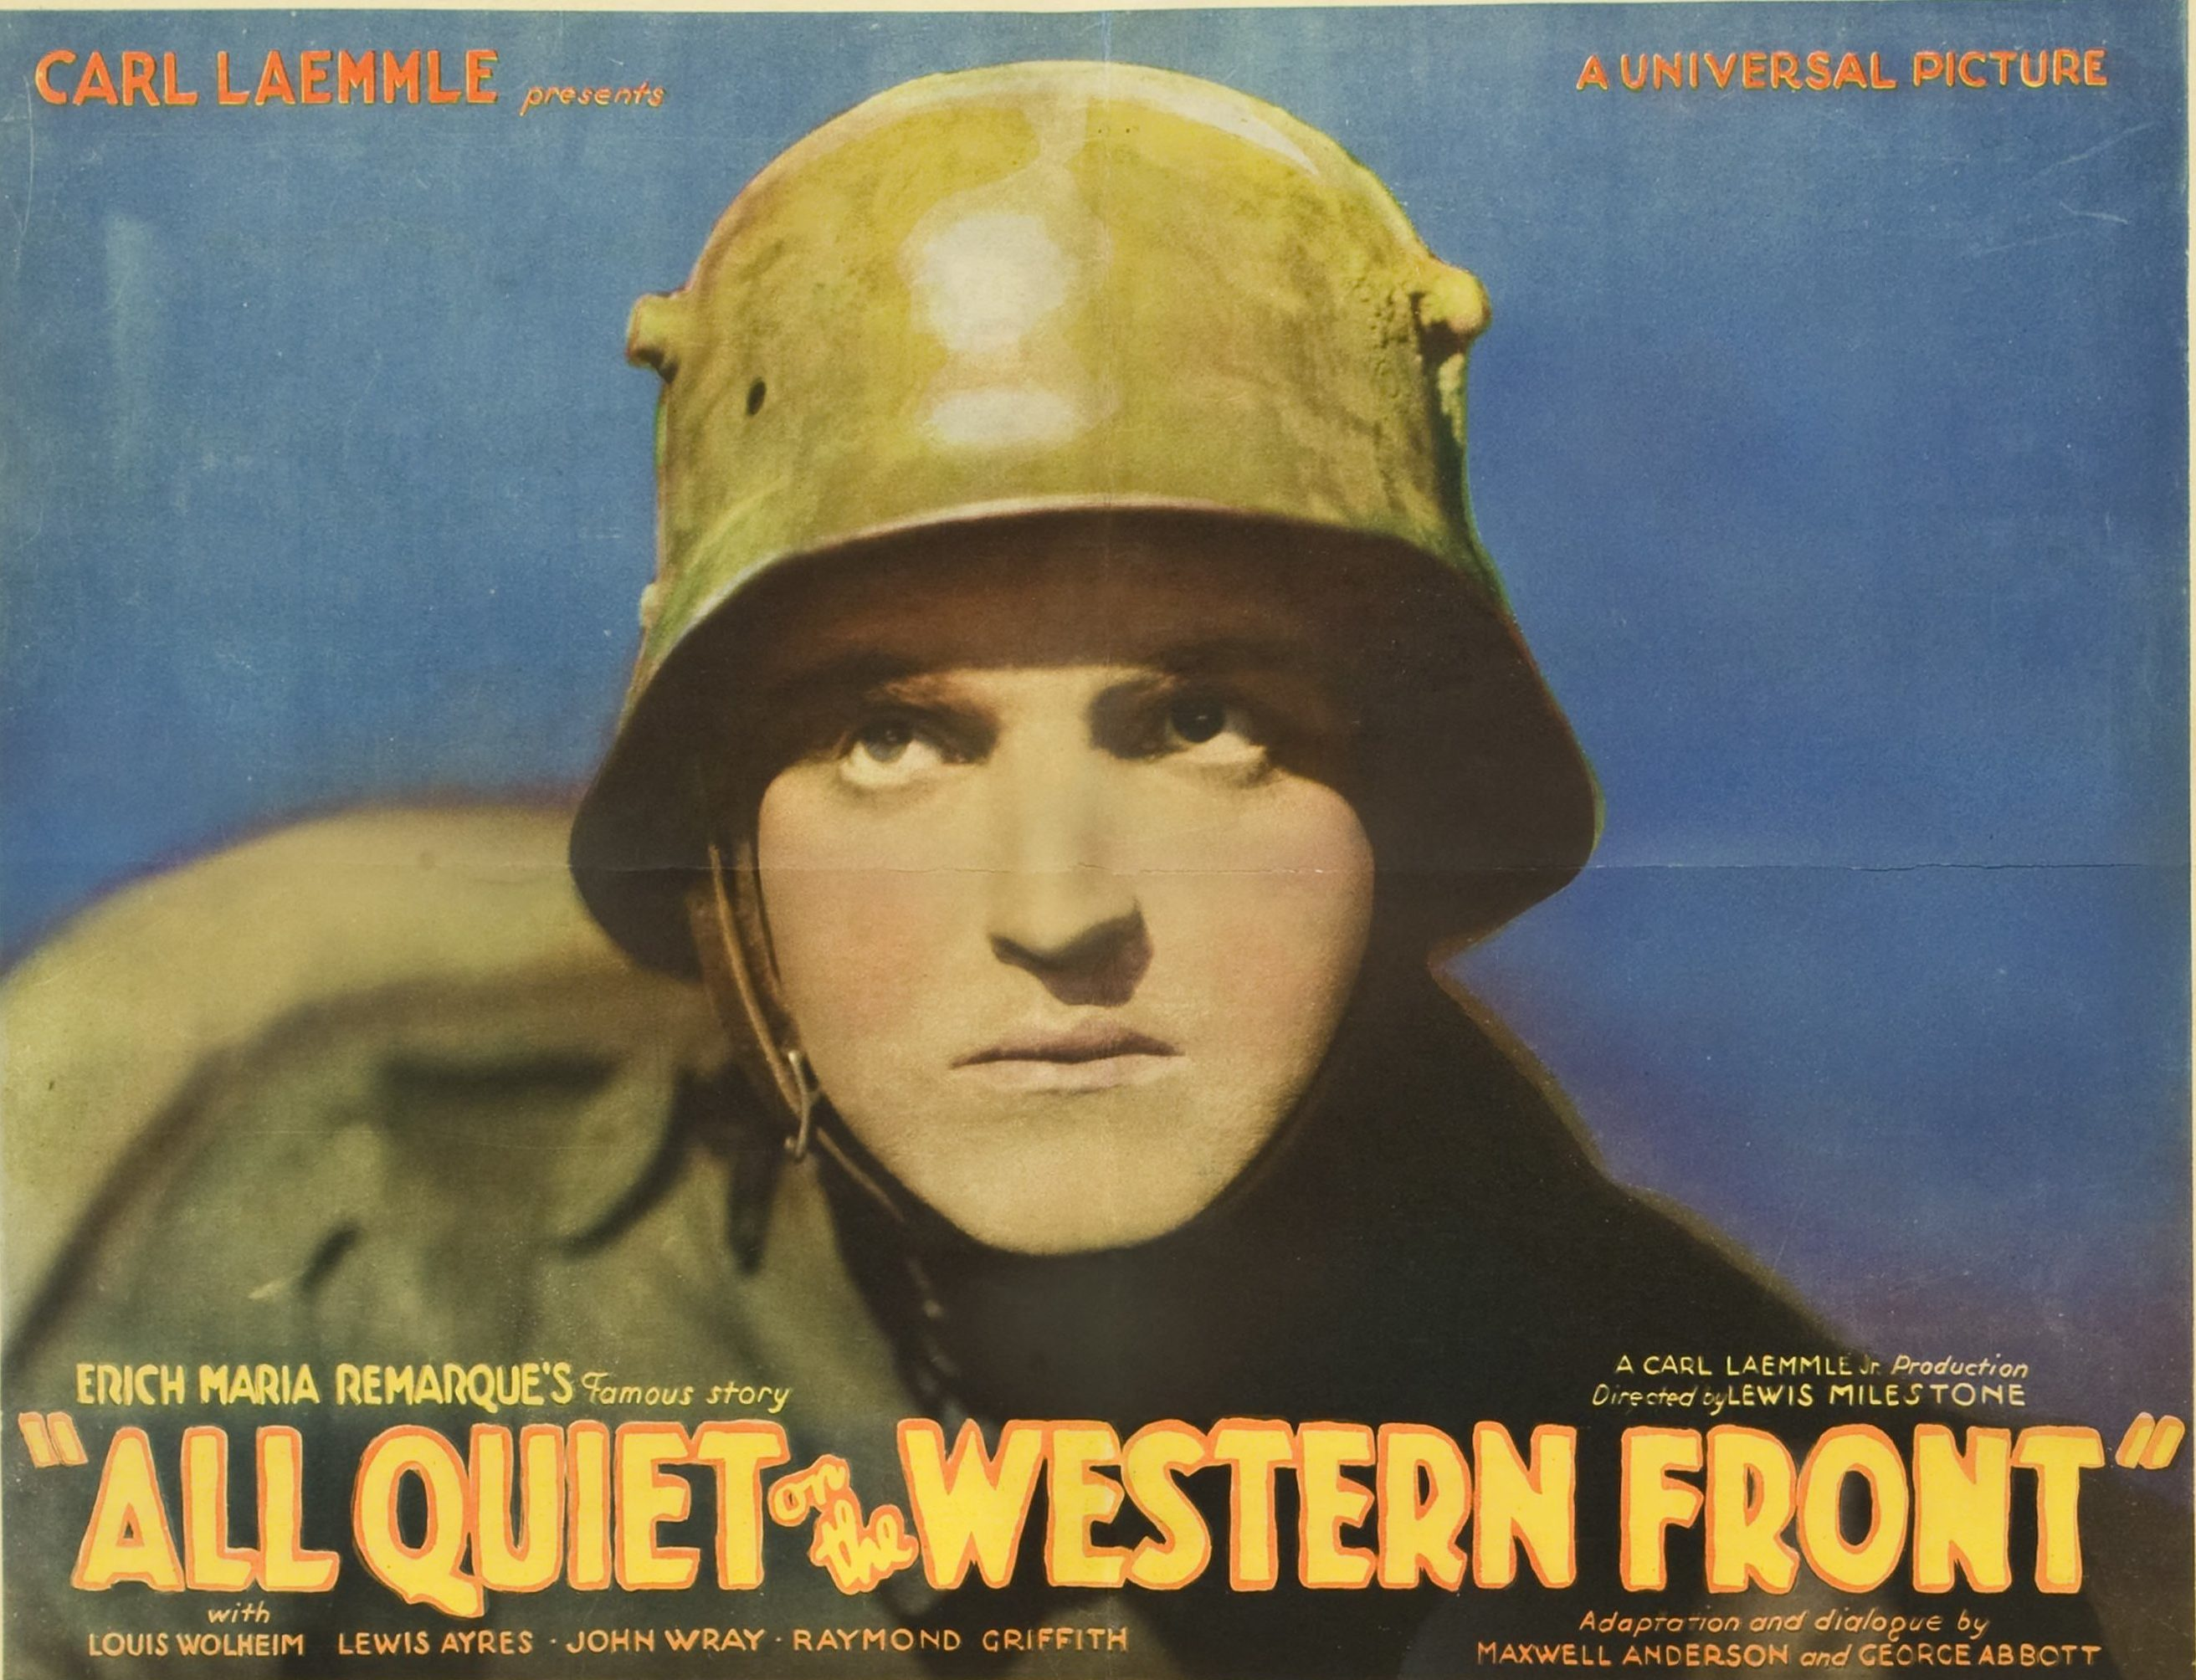 character analysis of paul baumer in all quiet on the western front Paul would walk through fire for kat, and, perhaps, the greatest tragedy of the novel arrives when he does just that: when kat is wounded one summer day, paul binds his wound and then carries him though the storm of gunfire to the nearest makeshift hospital.